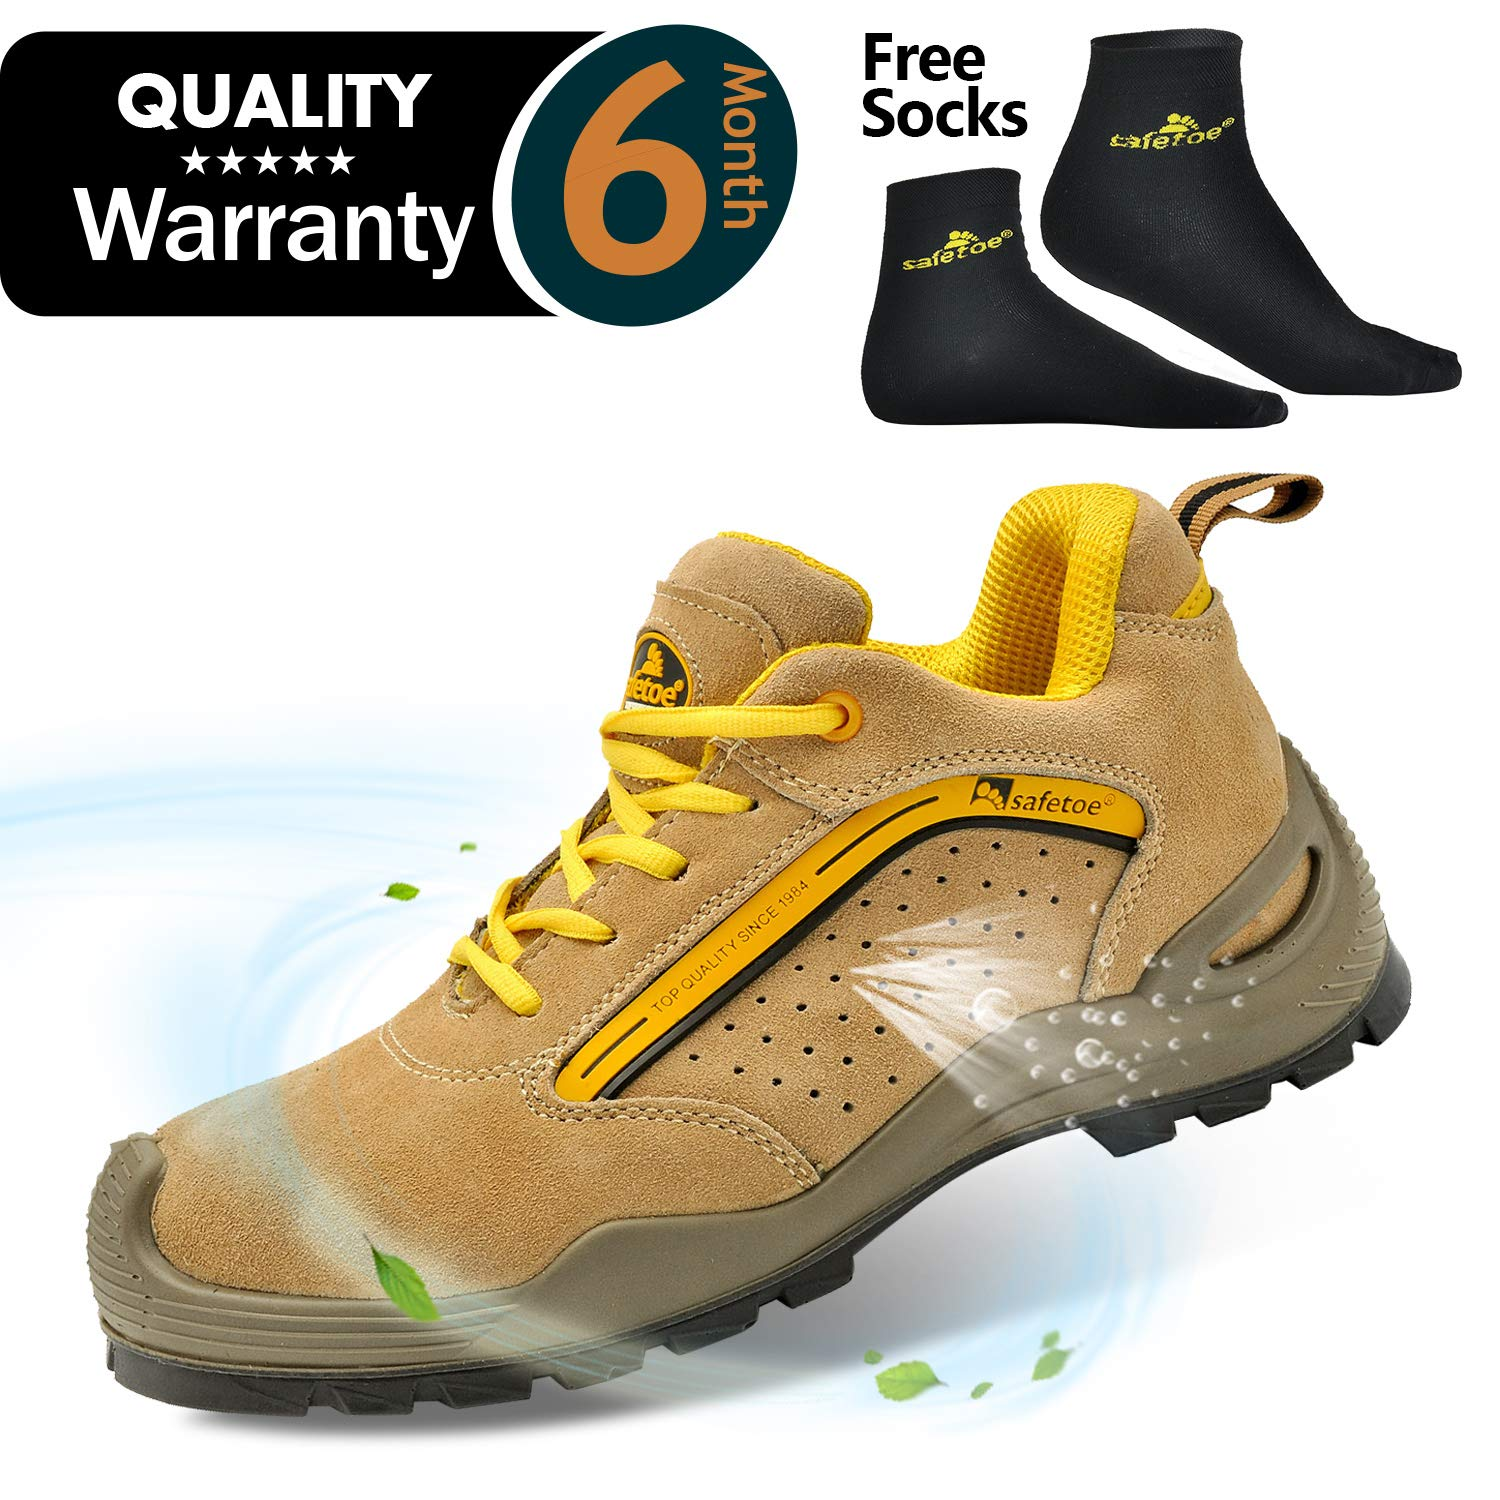 SAFETOE Mens Safety Work Shoes -L7296 Leather & Steel Toe Work Boots for Heavy Duty Work Wide Fit